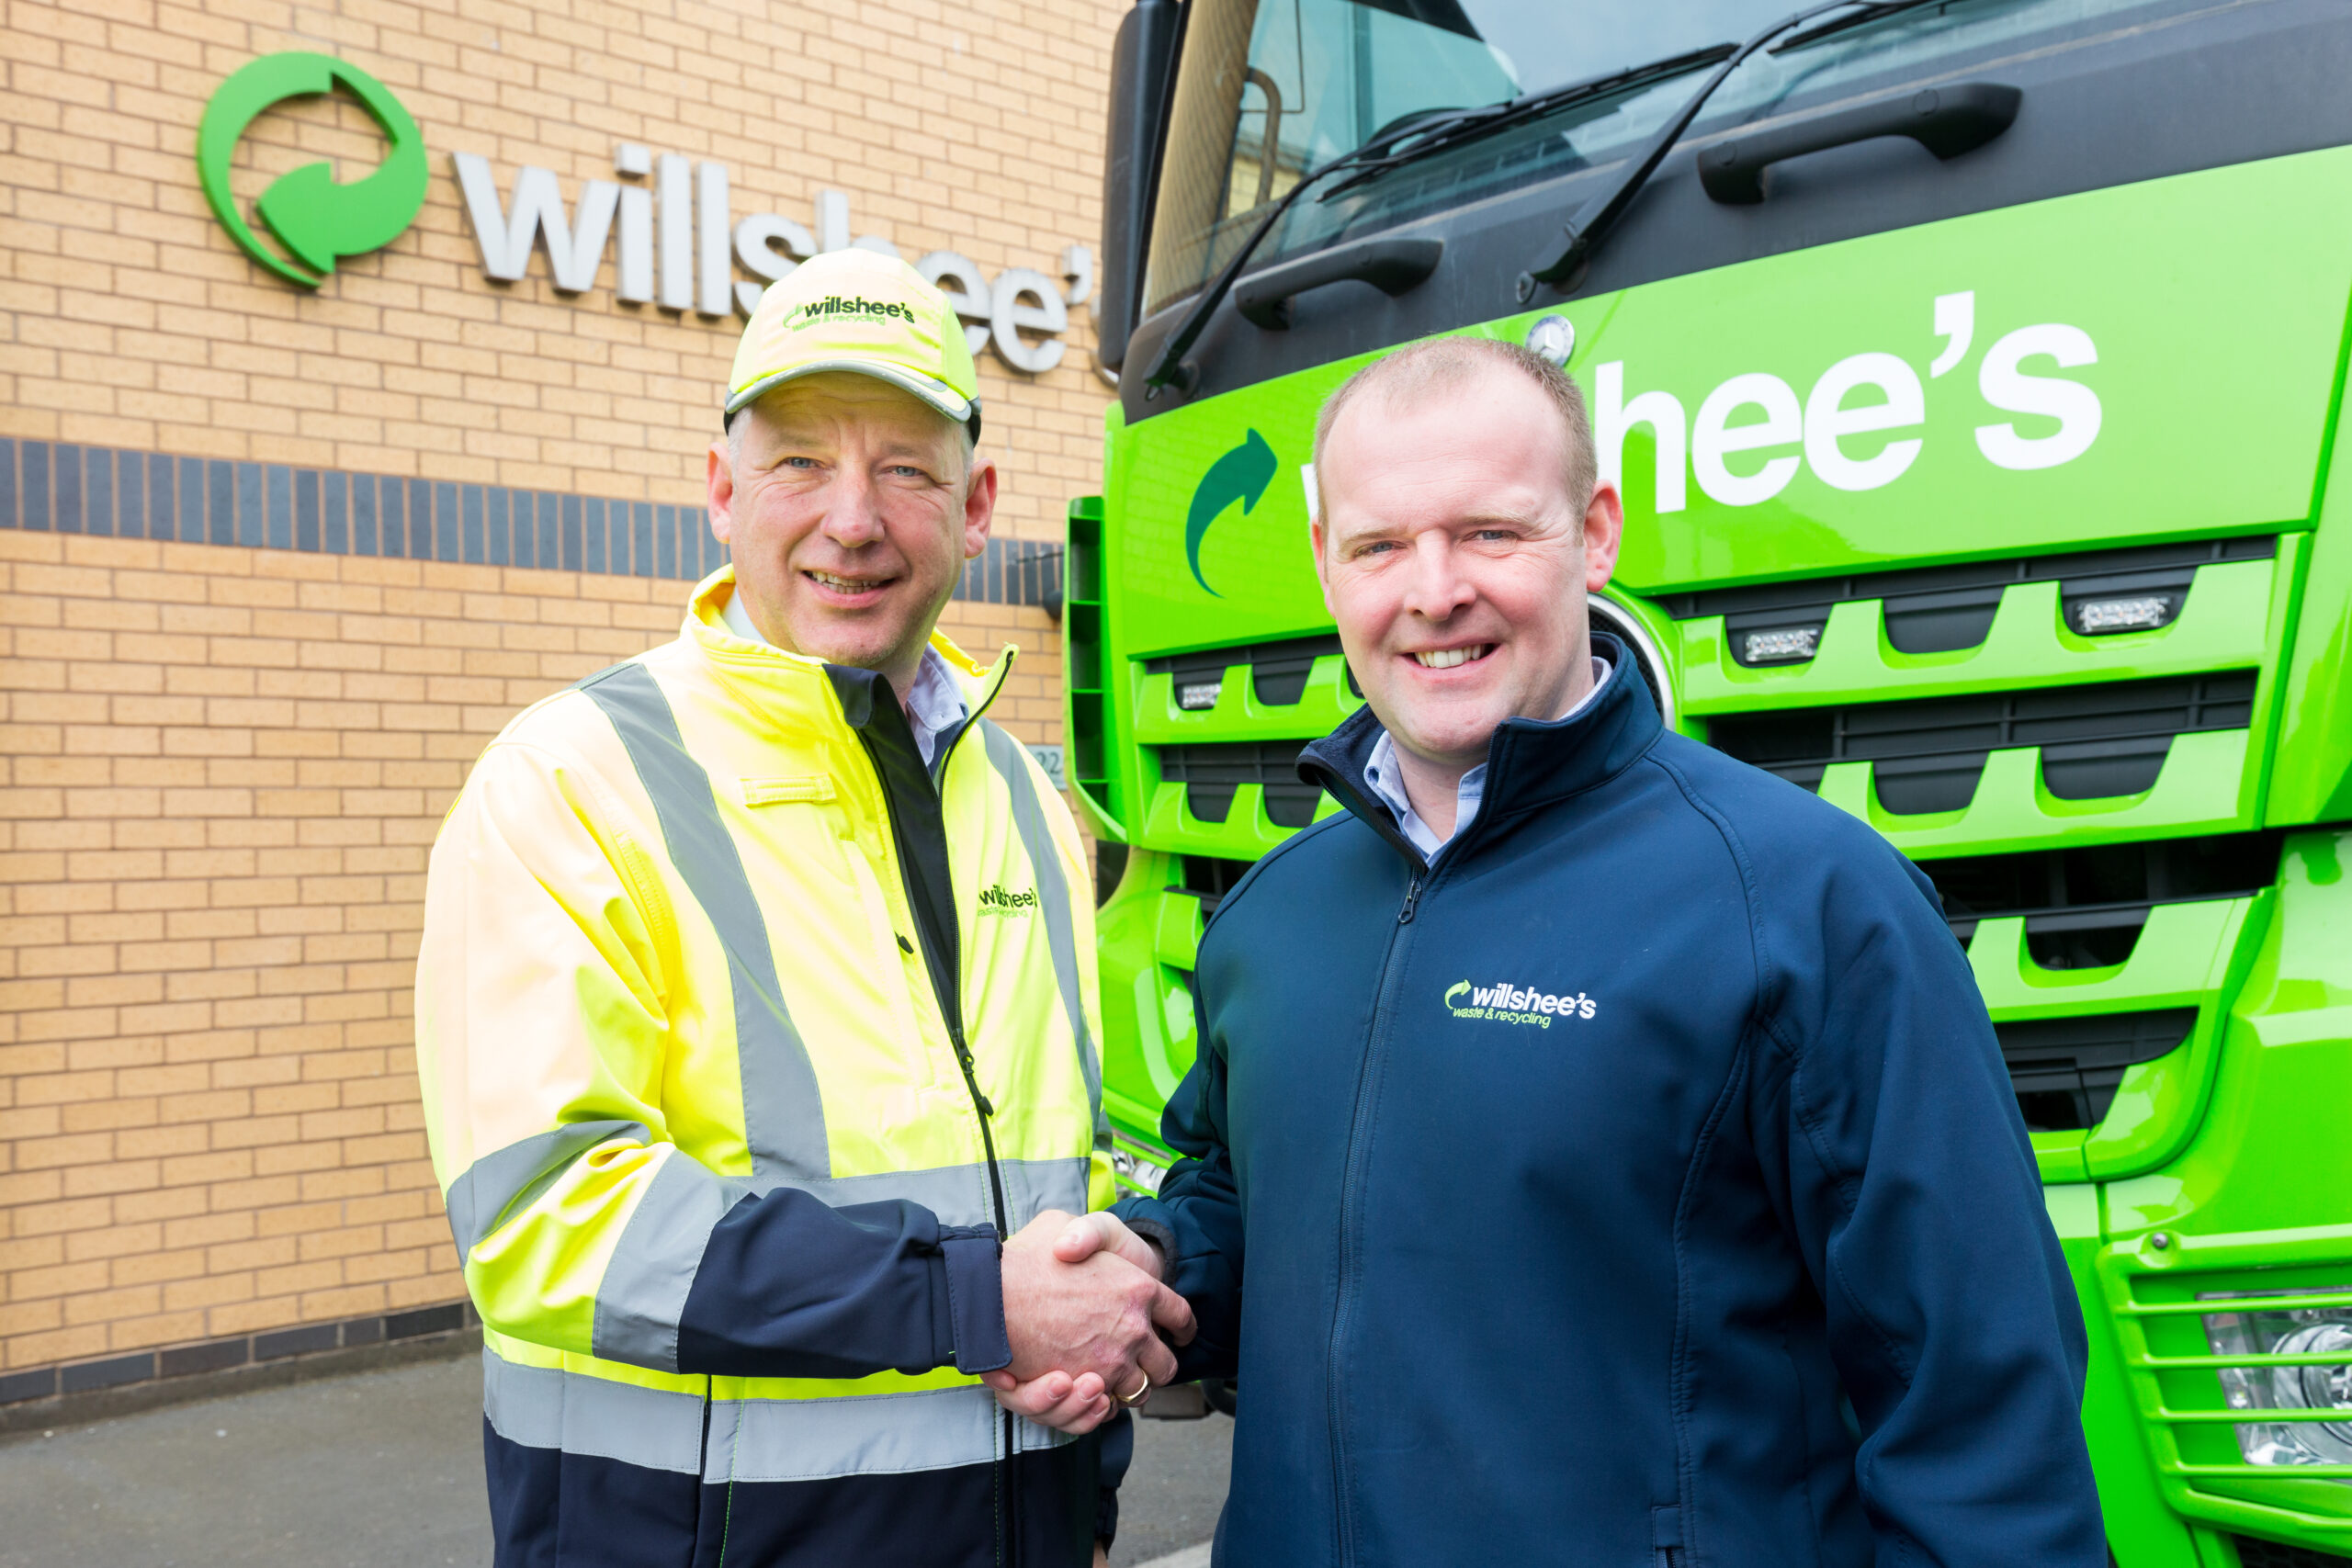 Gary Frost standing in front of recycling lorry with Dean Willshee - shaking hands